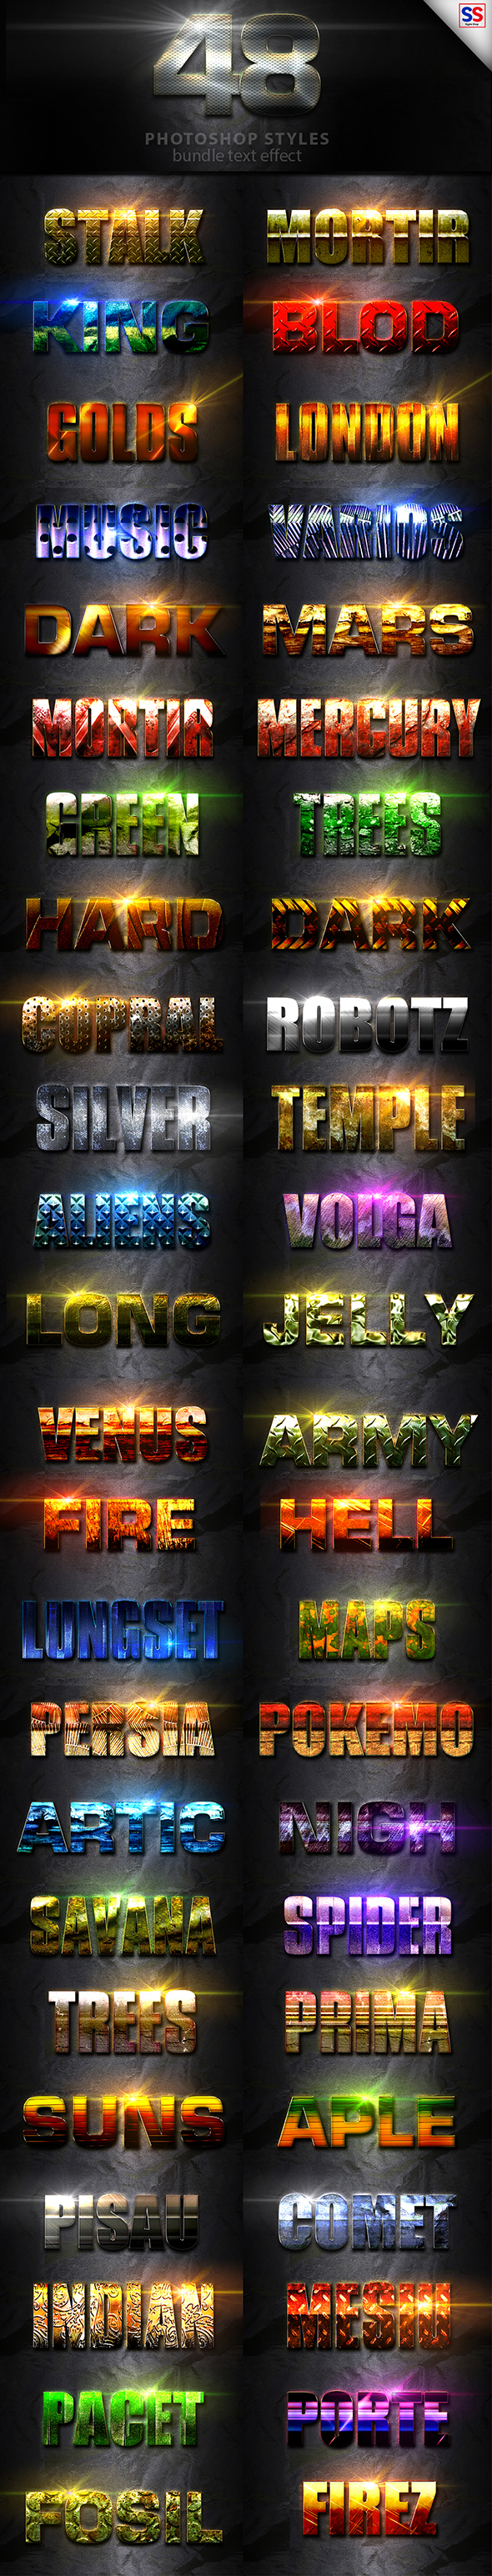 48 Text Effect Bundle Vol 2 - Text Effects Styles